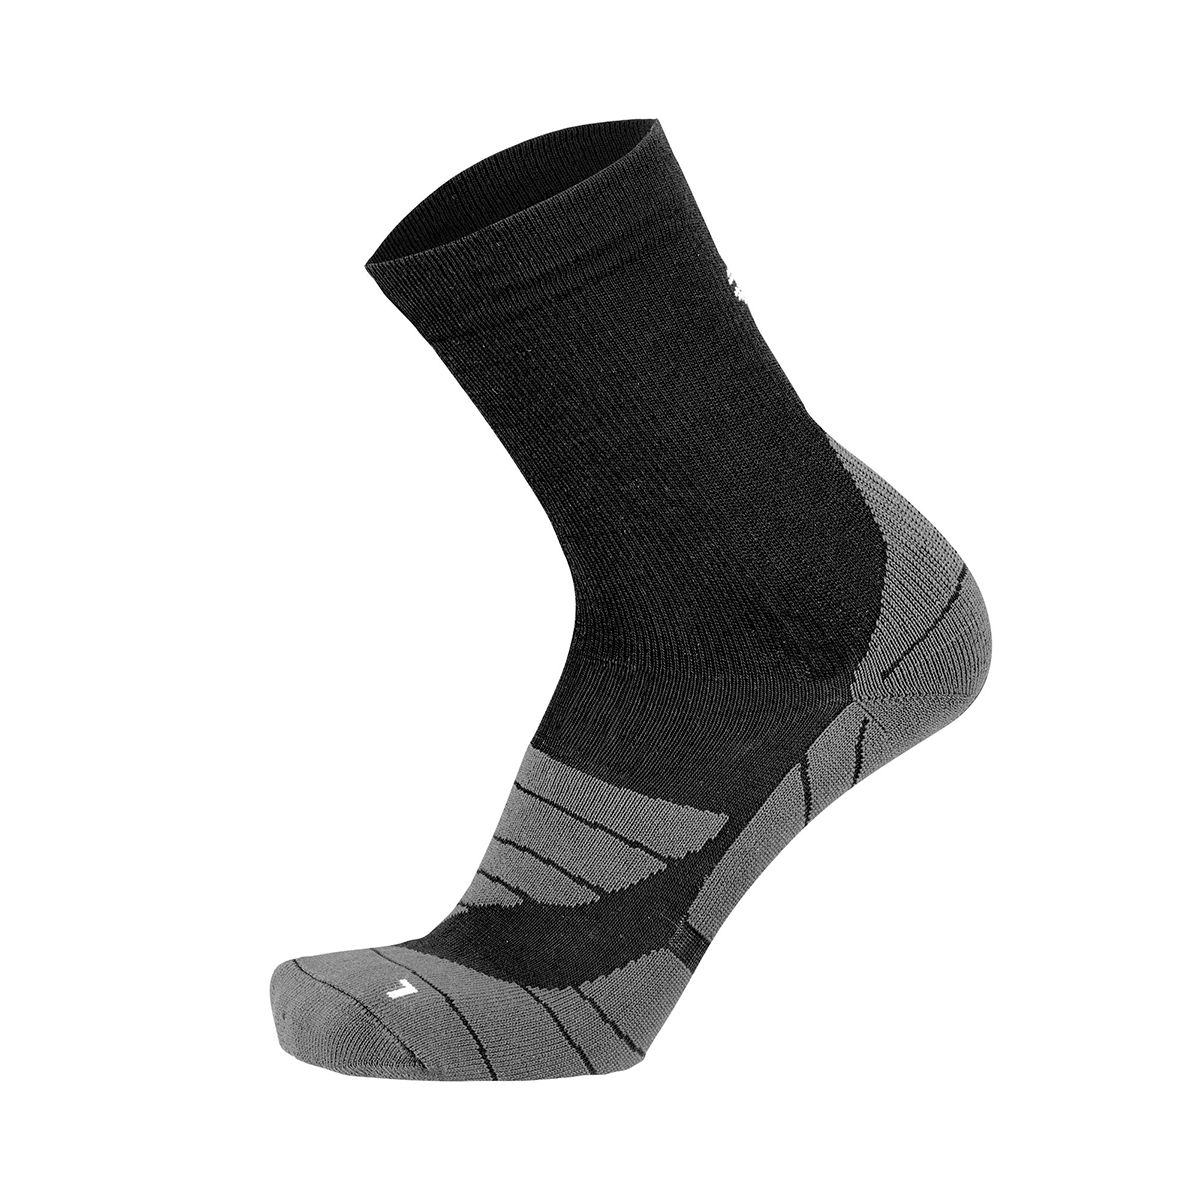 WINTER ACTIVE cycling socks